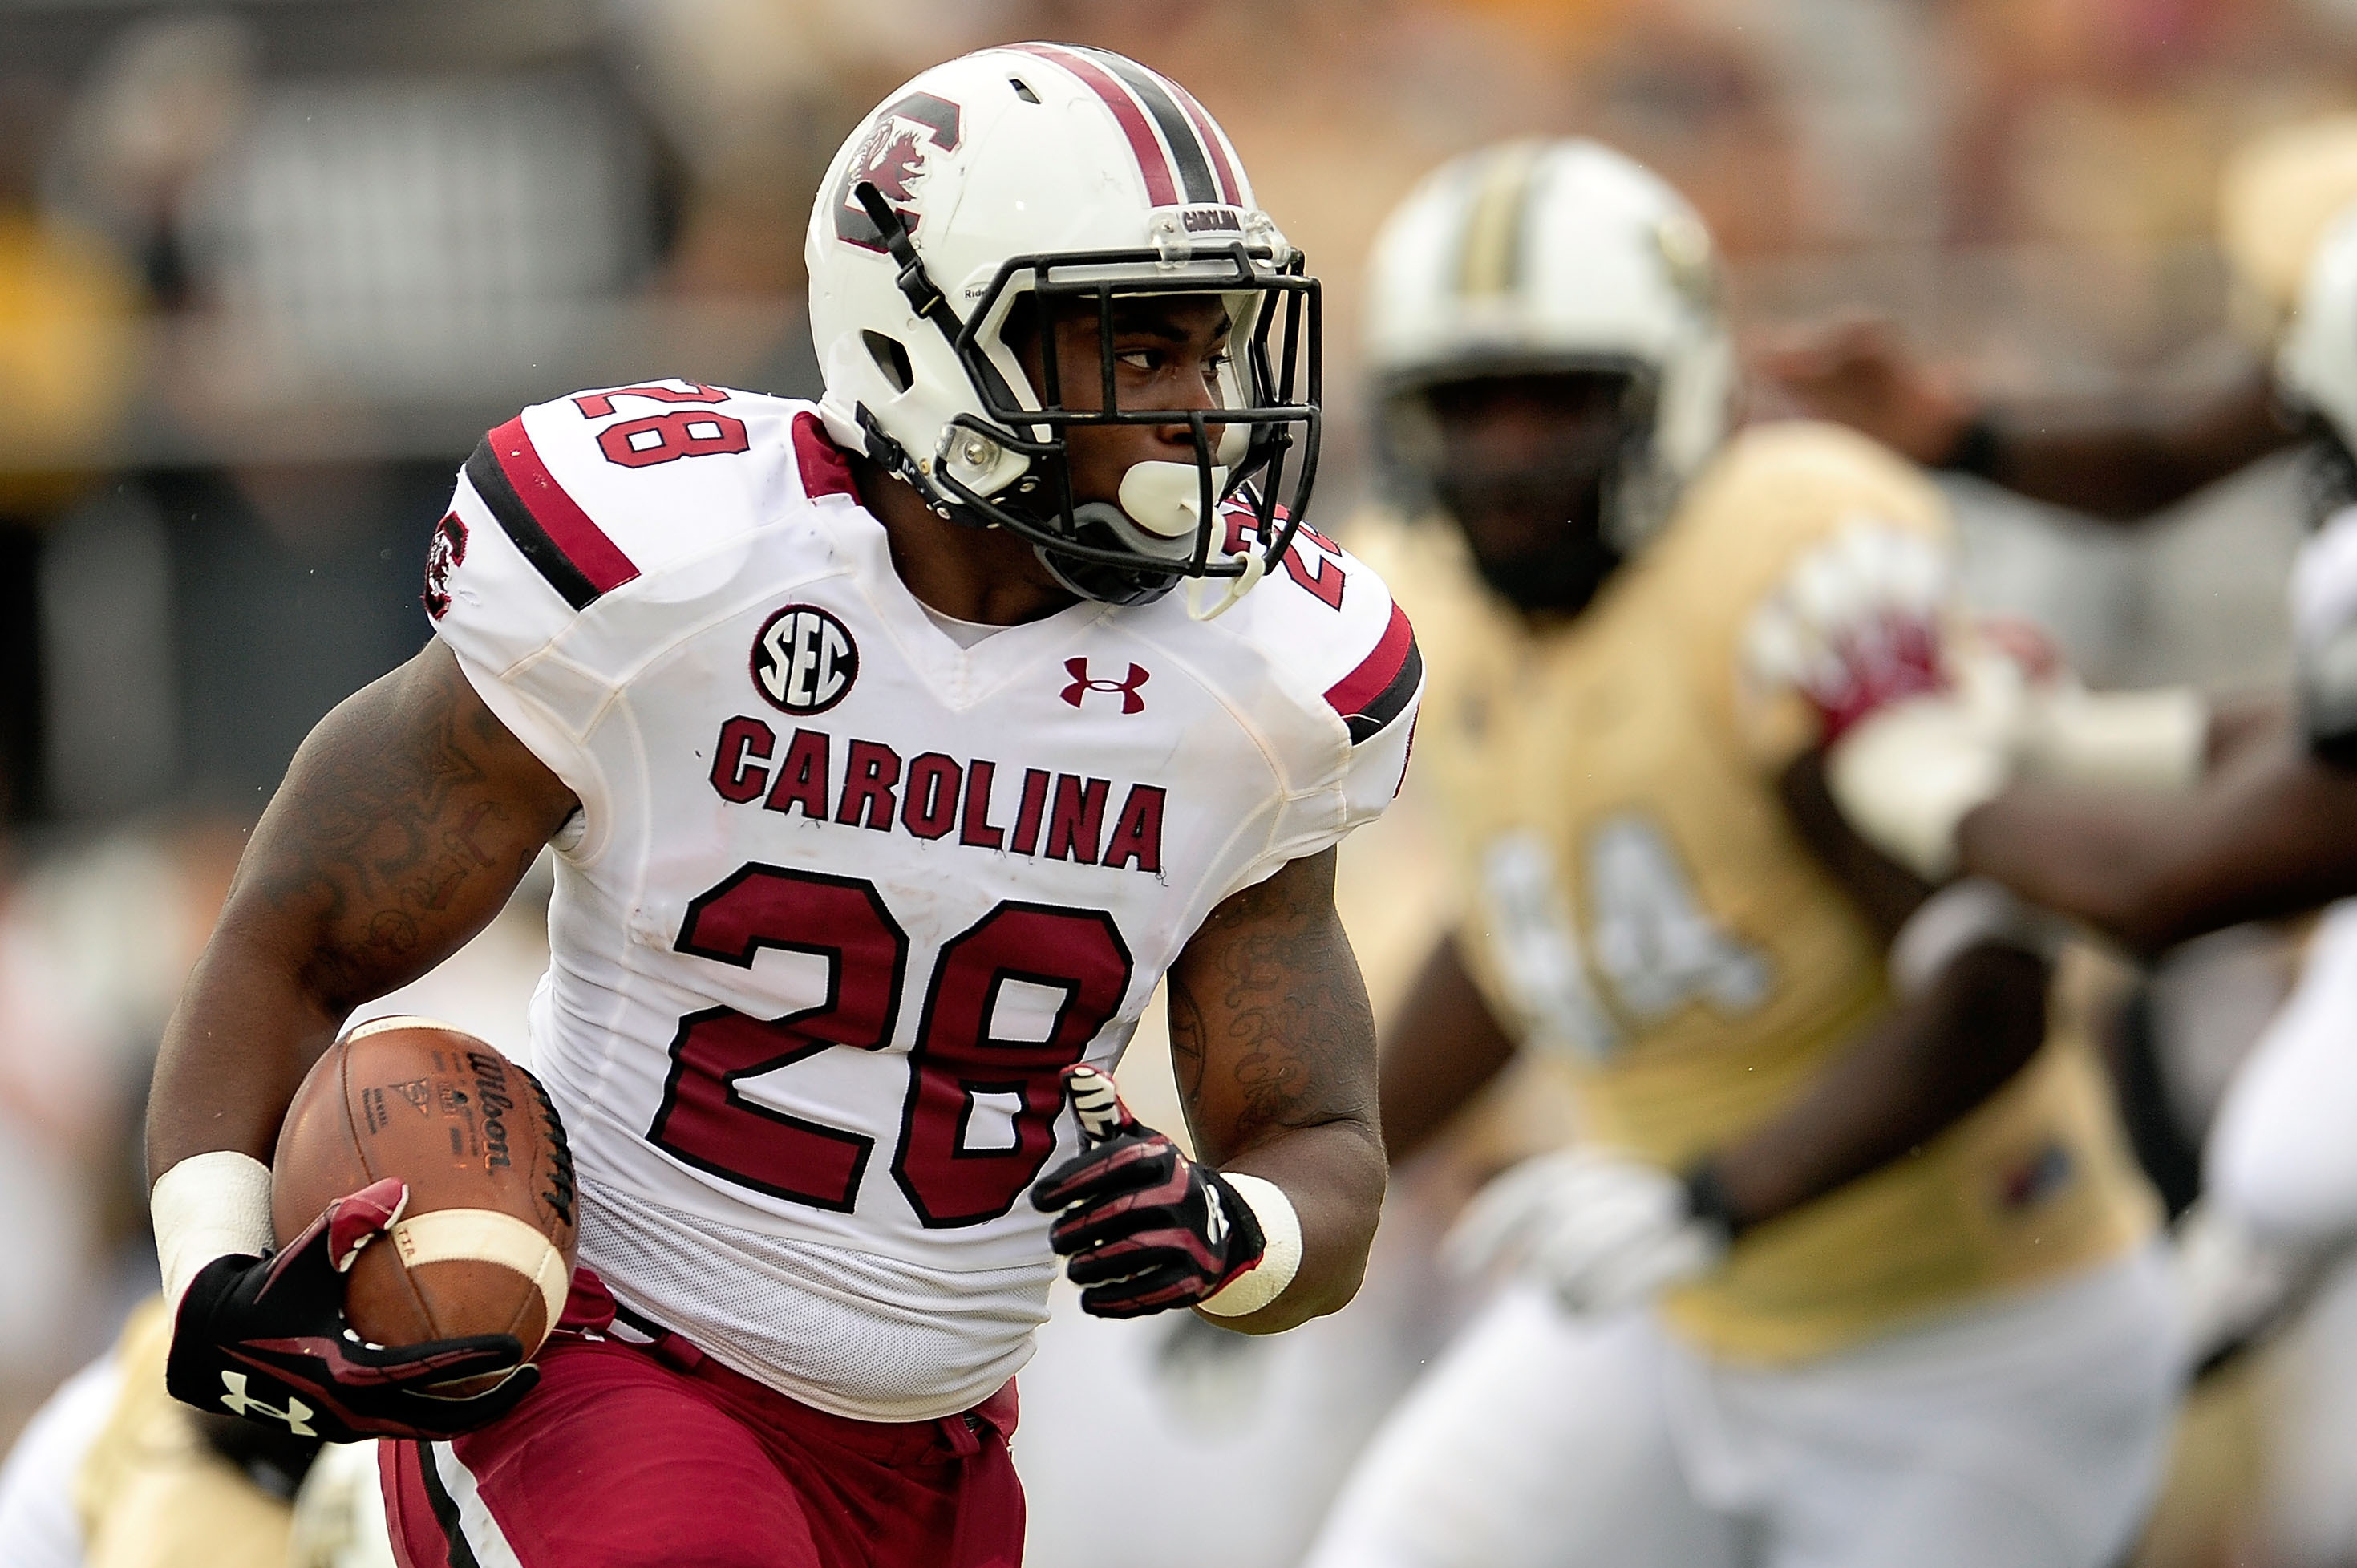 South Carolina's Win over Central Florida Was Better Than ...